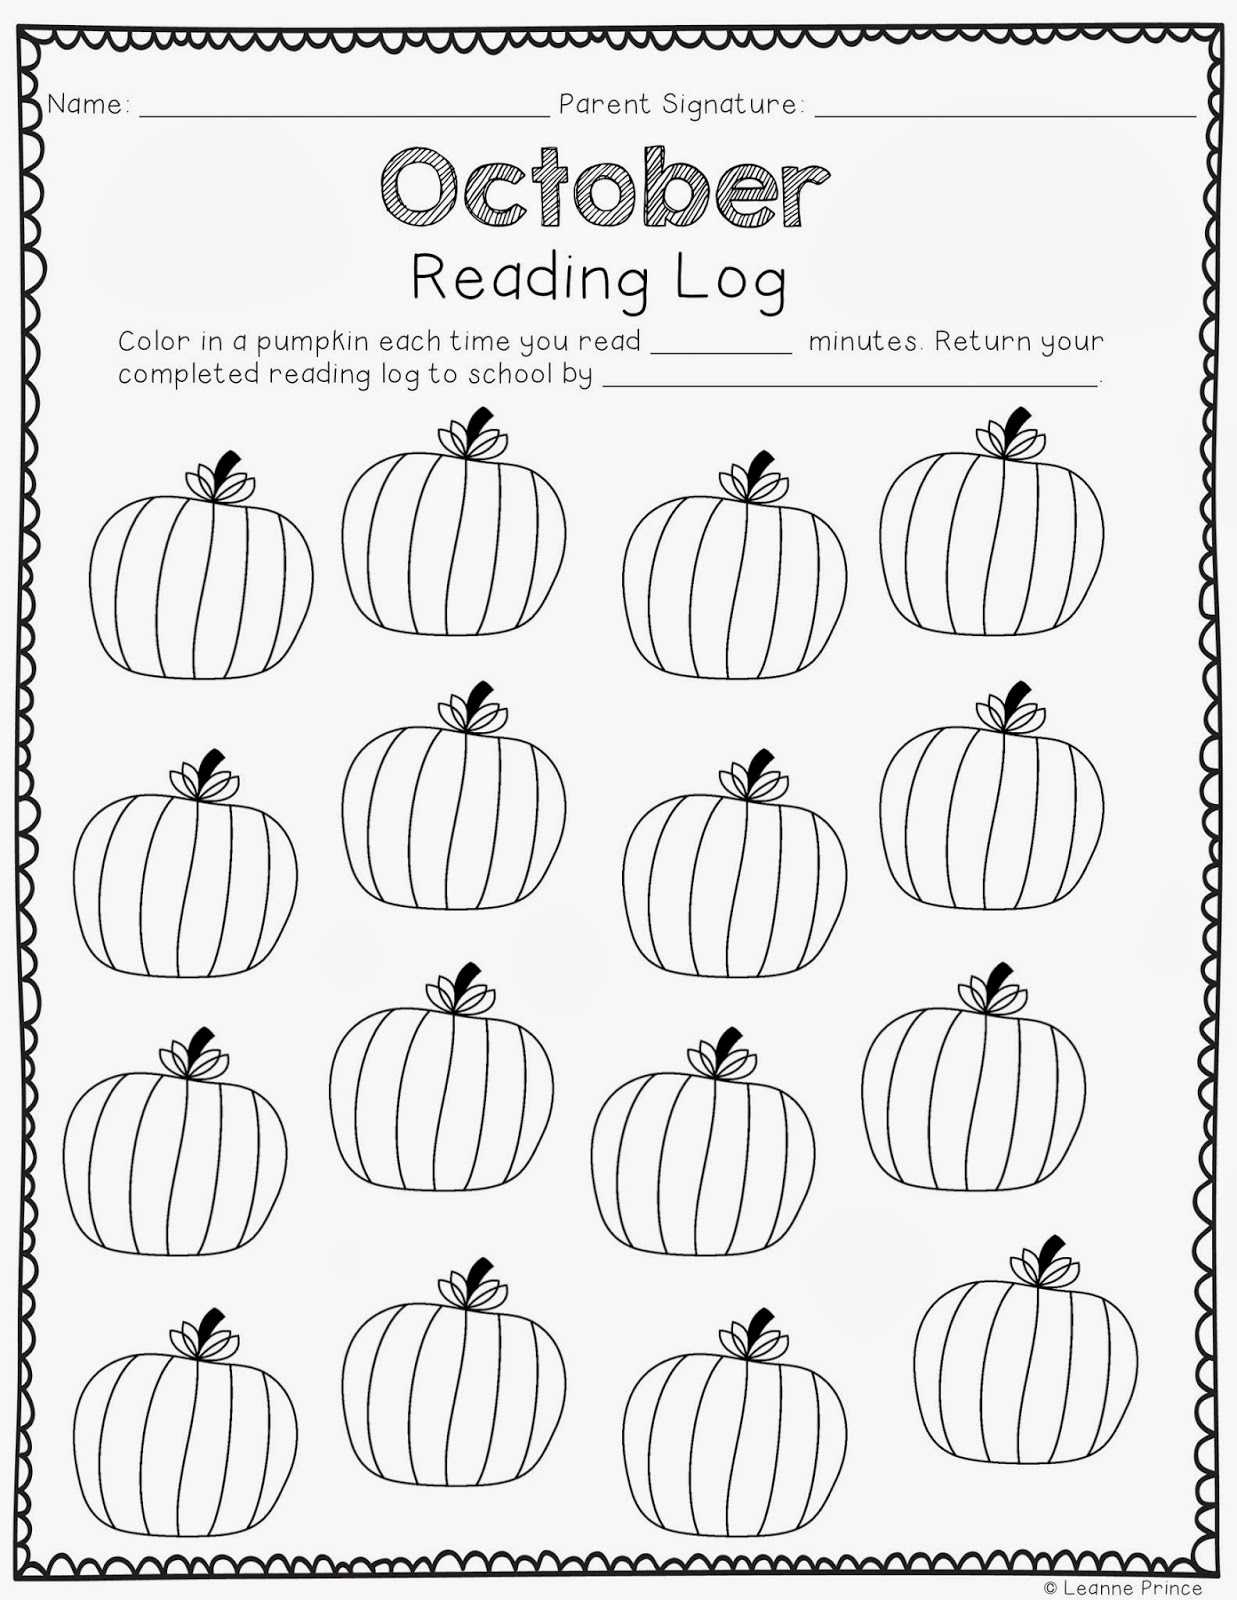 Mrs. Prince and Co.: MONTHLY READING LOGS